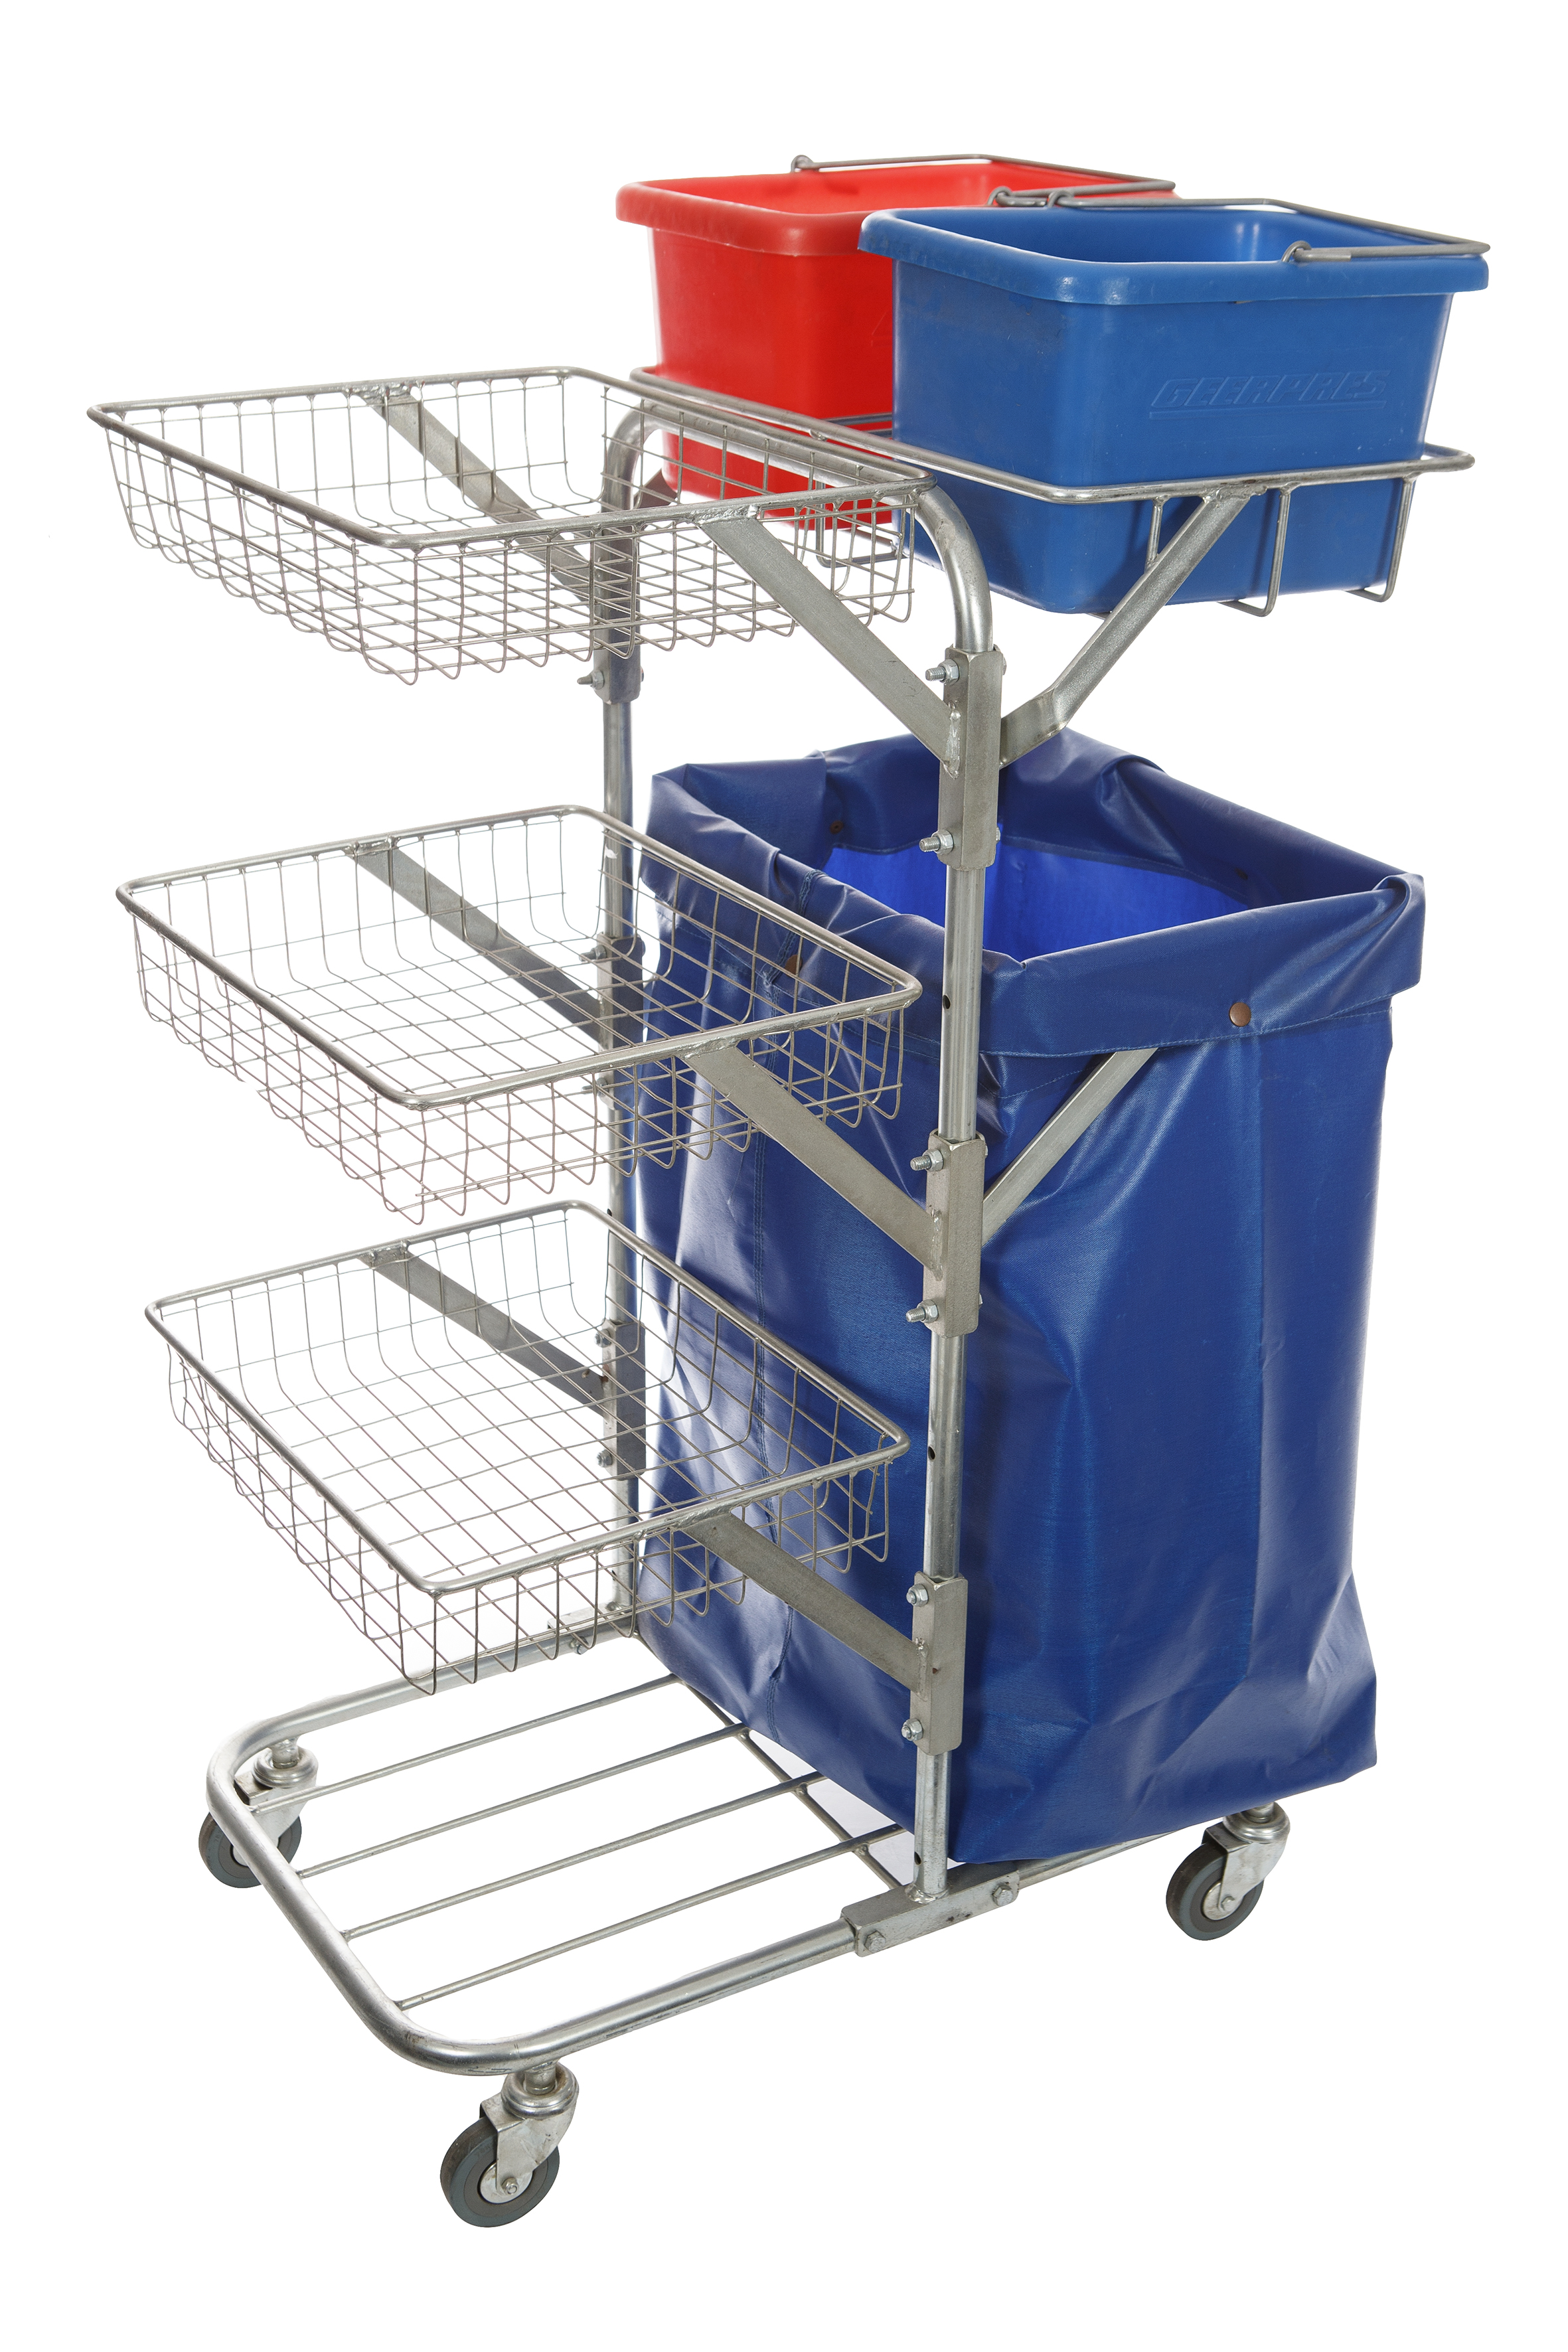 Hectoserve Chauffer Valet Trolley